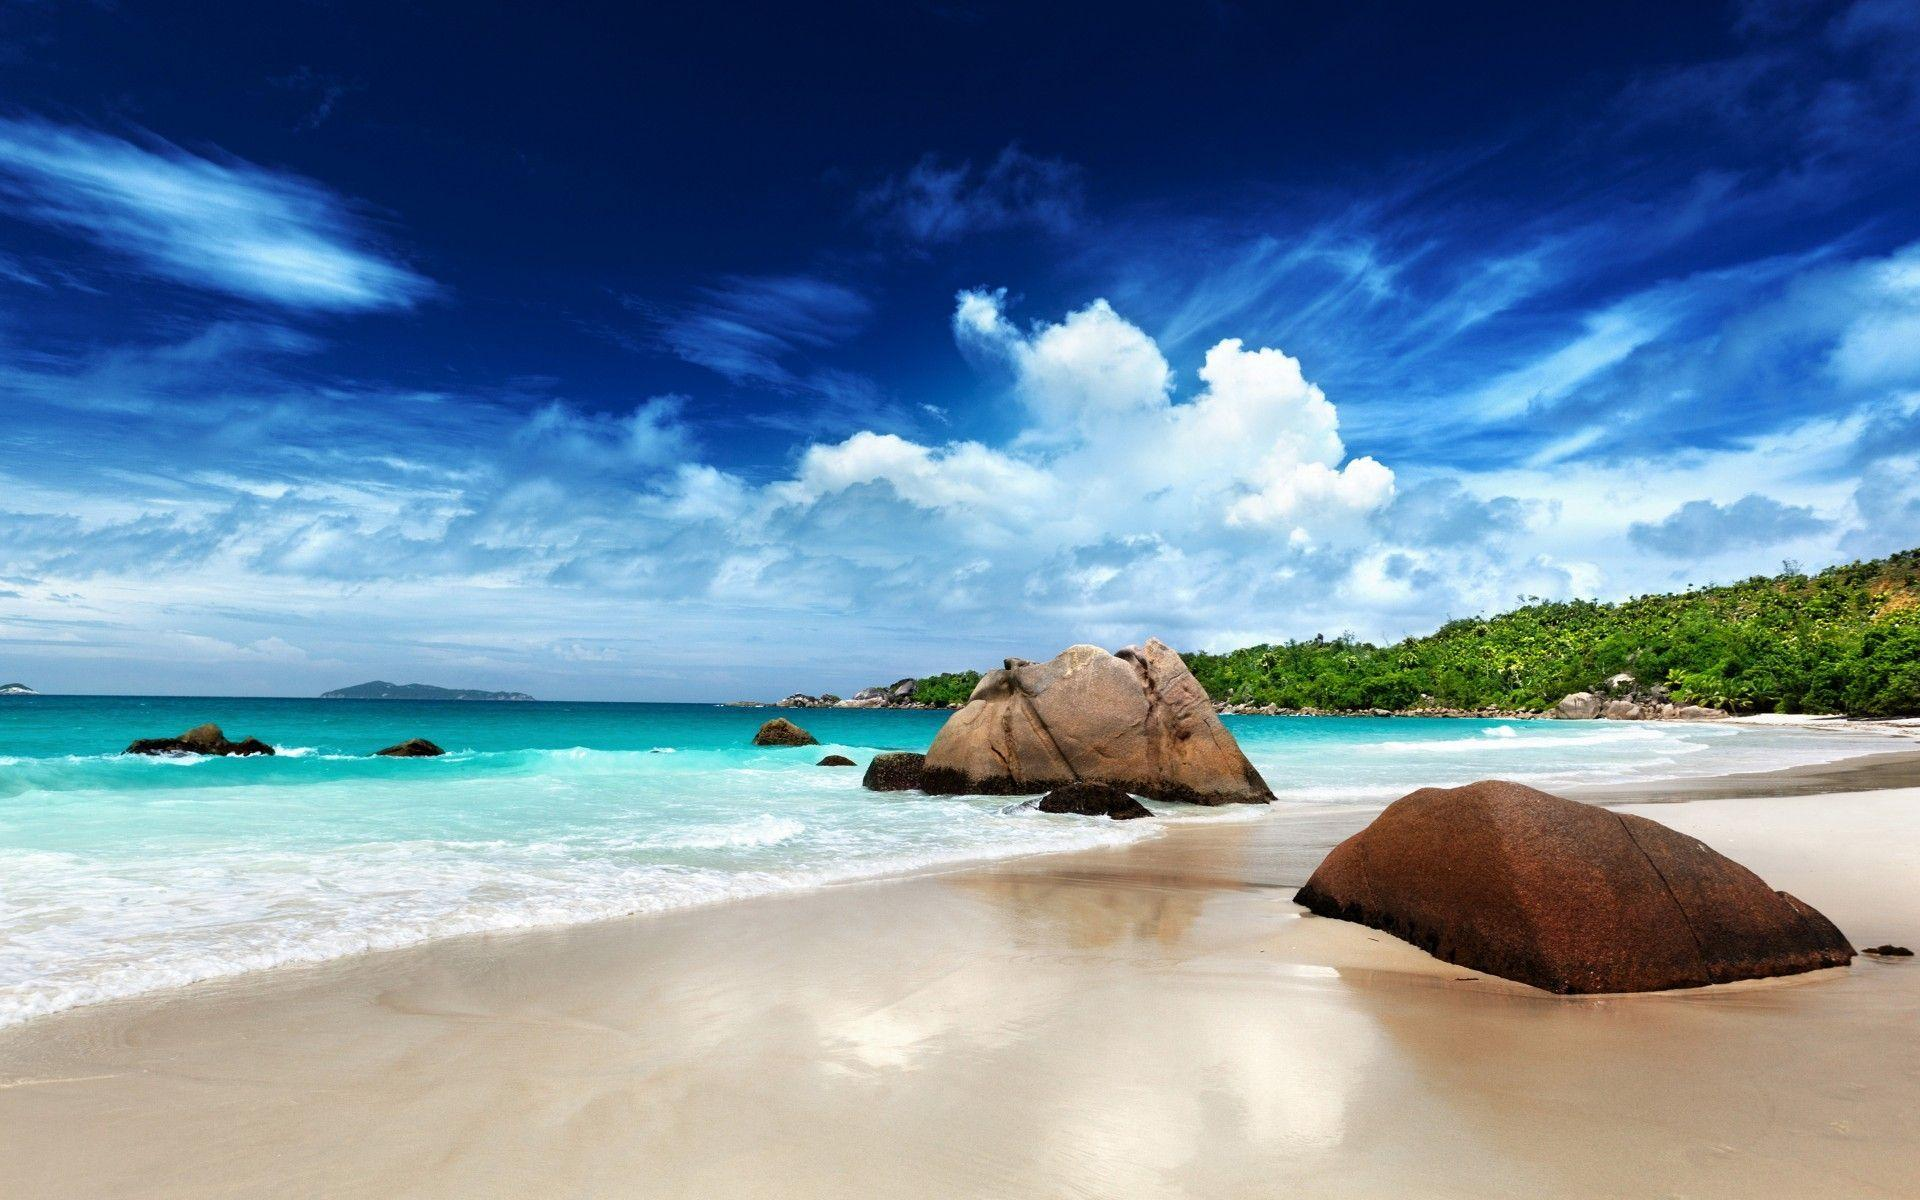 Beach Paradise Wallpapers 1920x1200